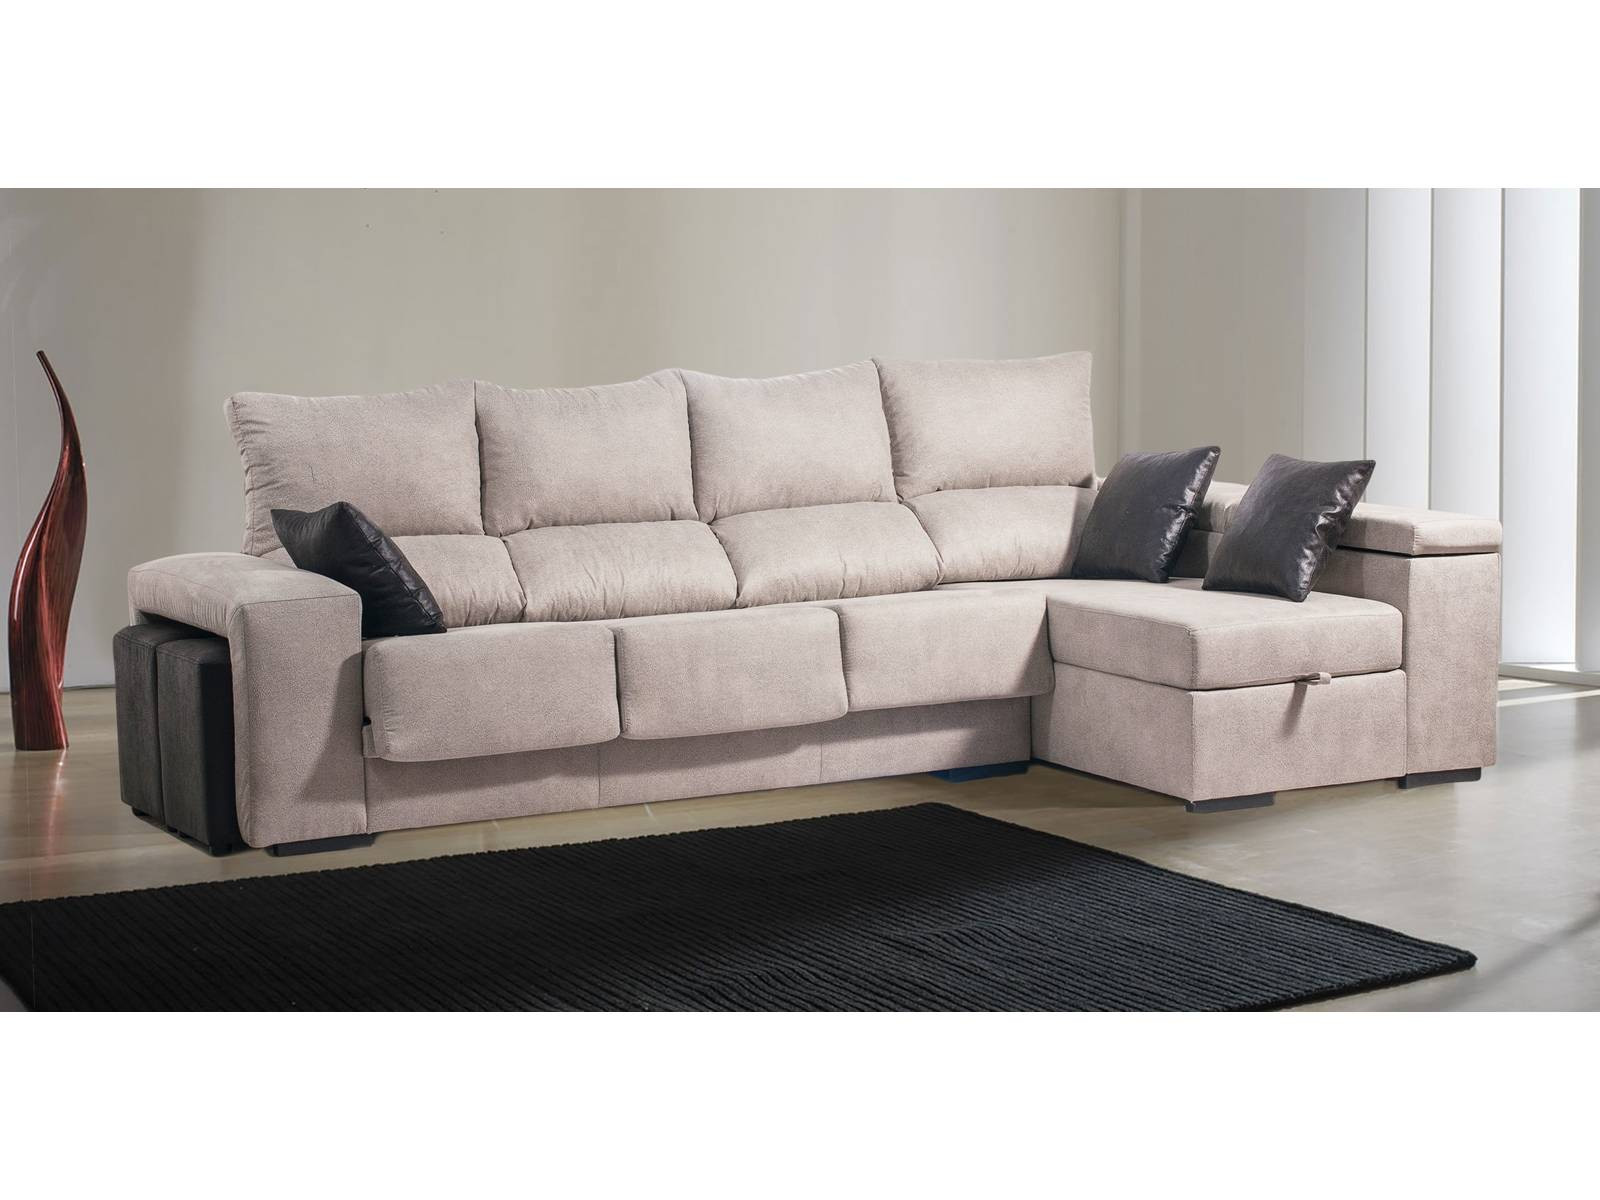 Sofa 3 Plazas Chaise Longue Perfecto sofá 3 P Con Chaise Longue Abatible Y 2 Puffs 3 Cojines Of 37  atractivo sofa 3 Plazas Chaise Longue